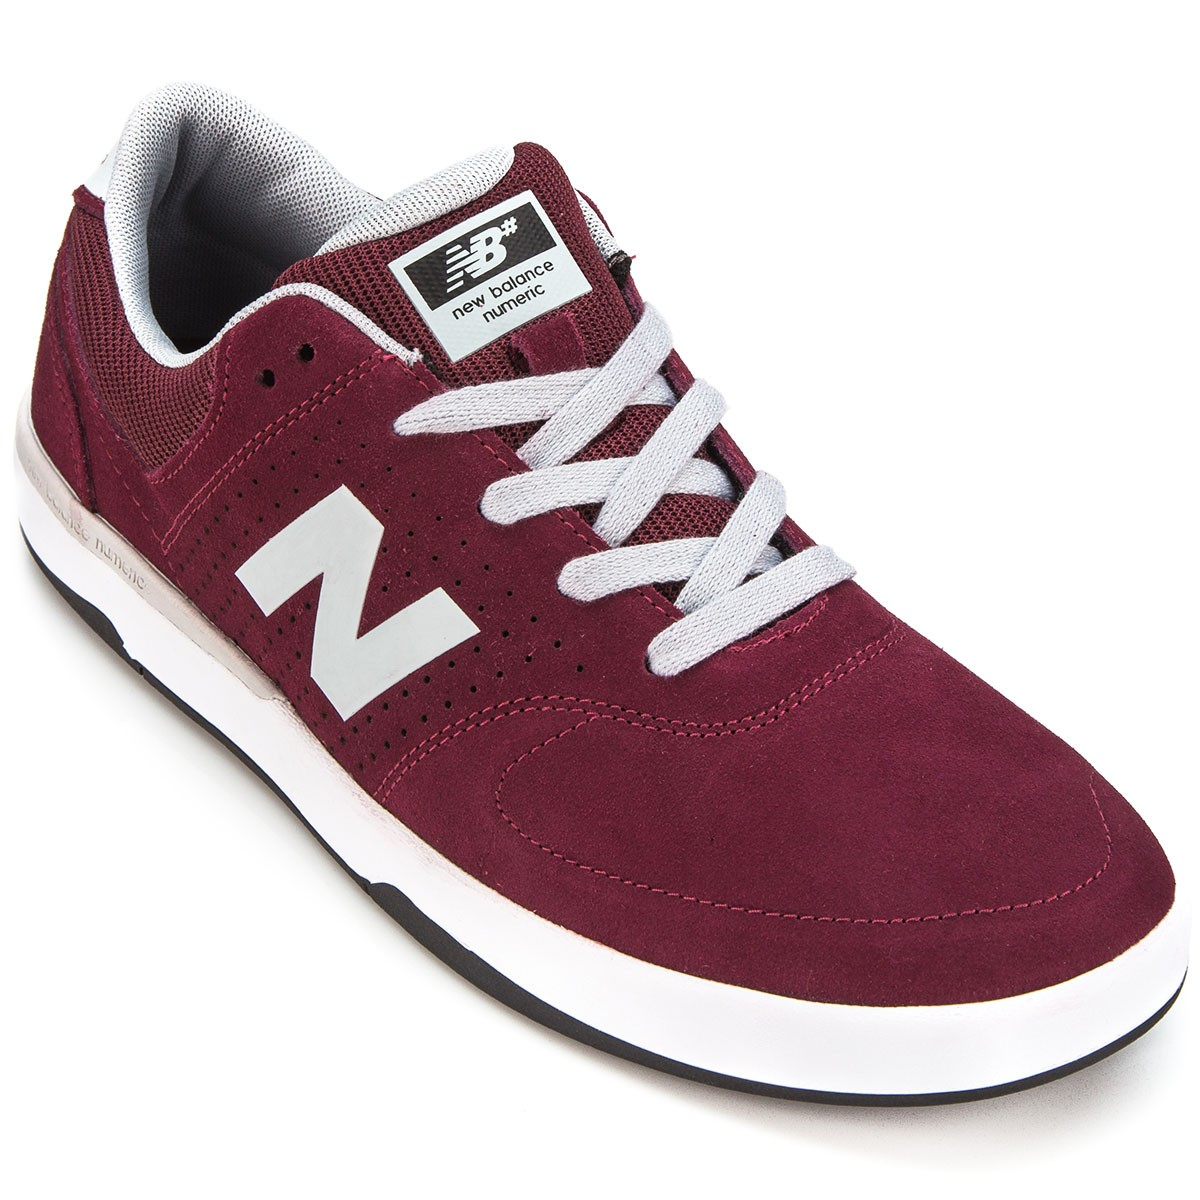 Where To Buy New Balance Shoes In Portland